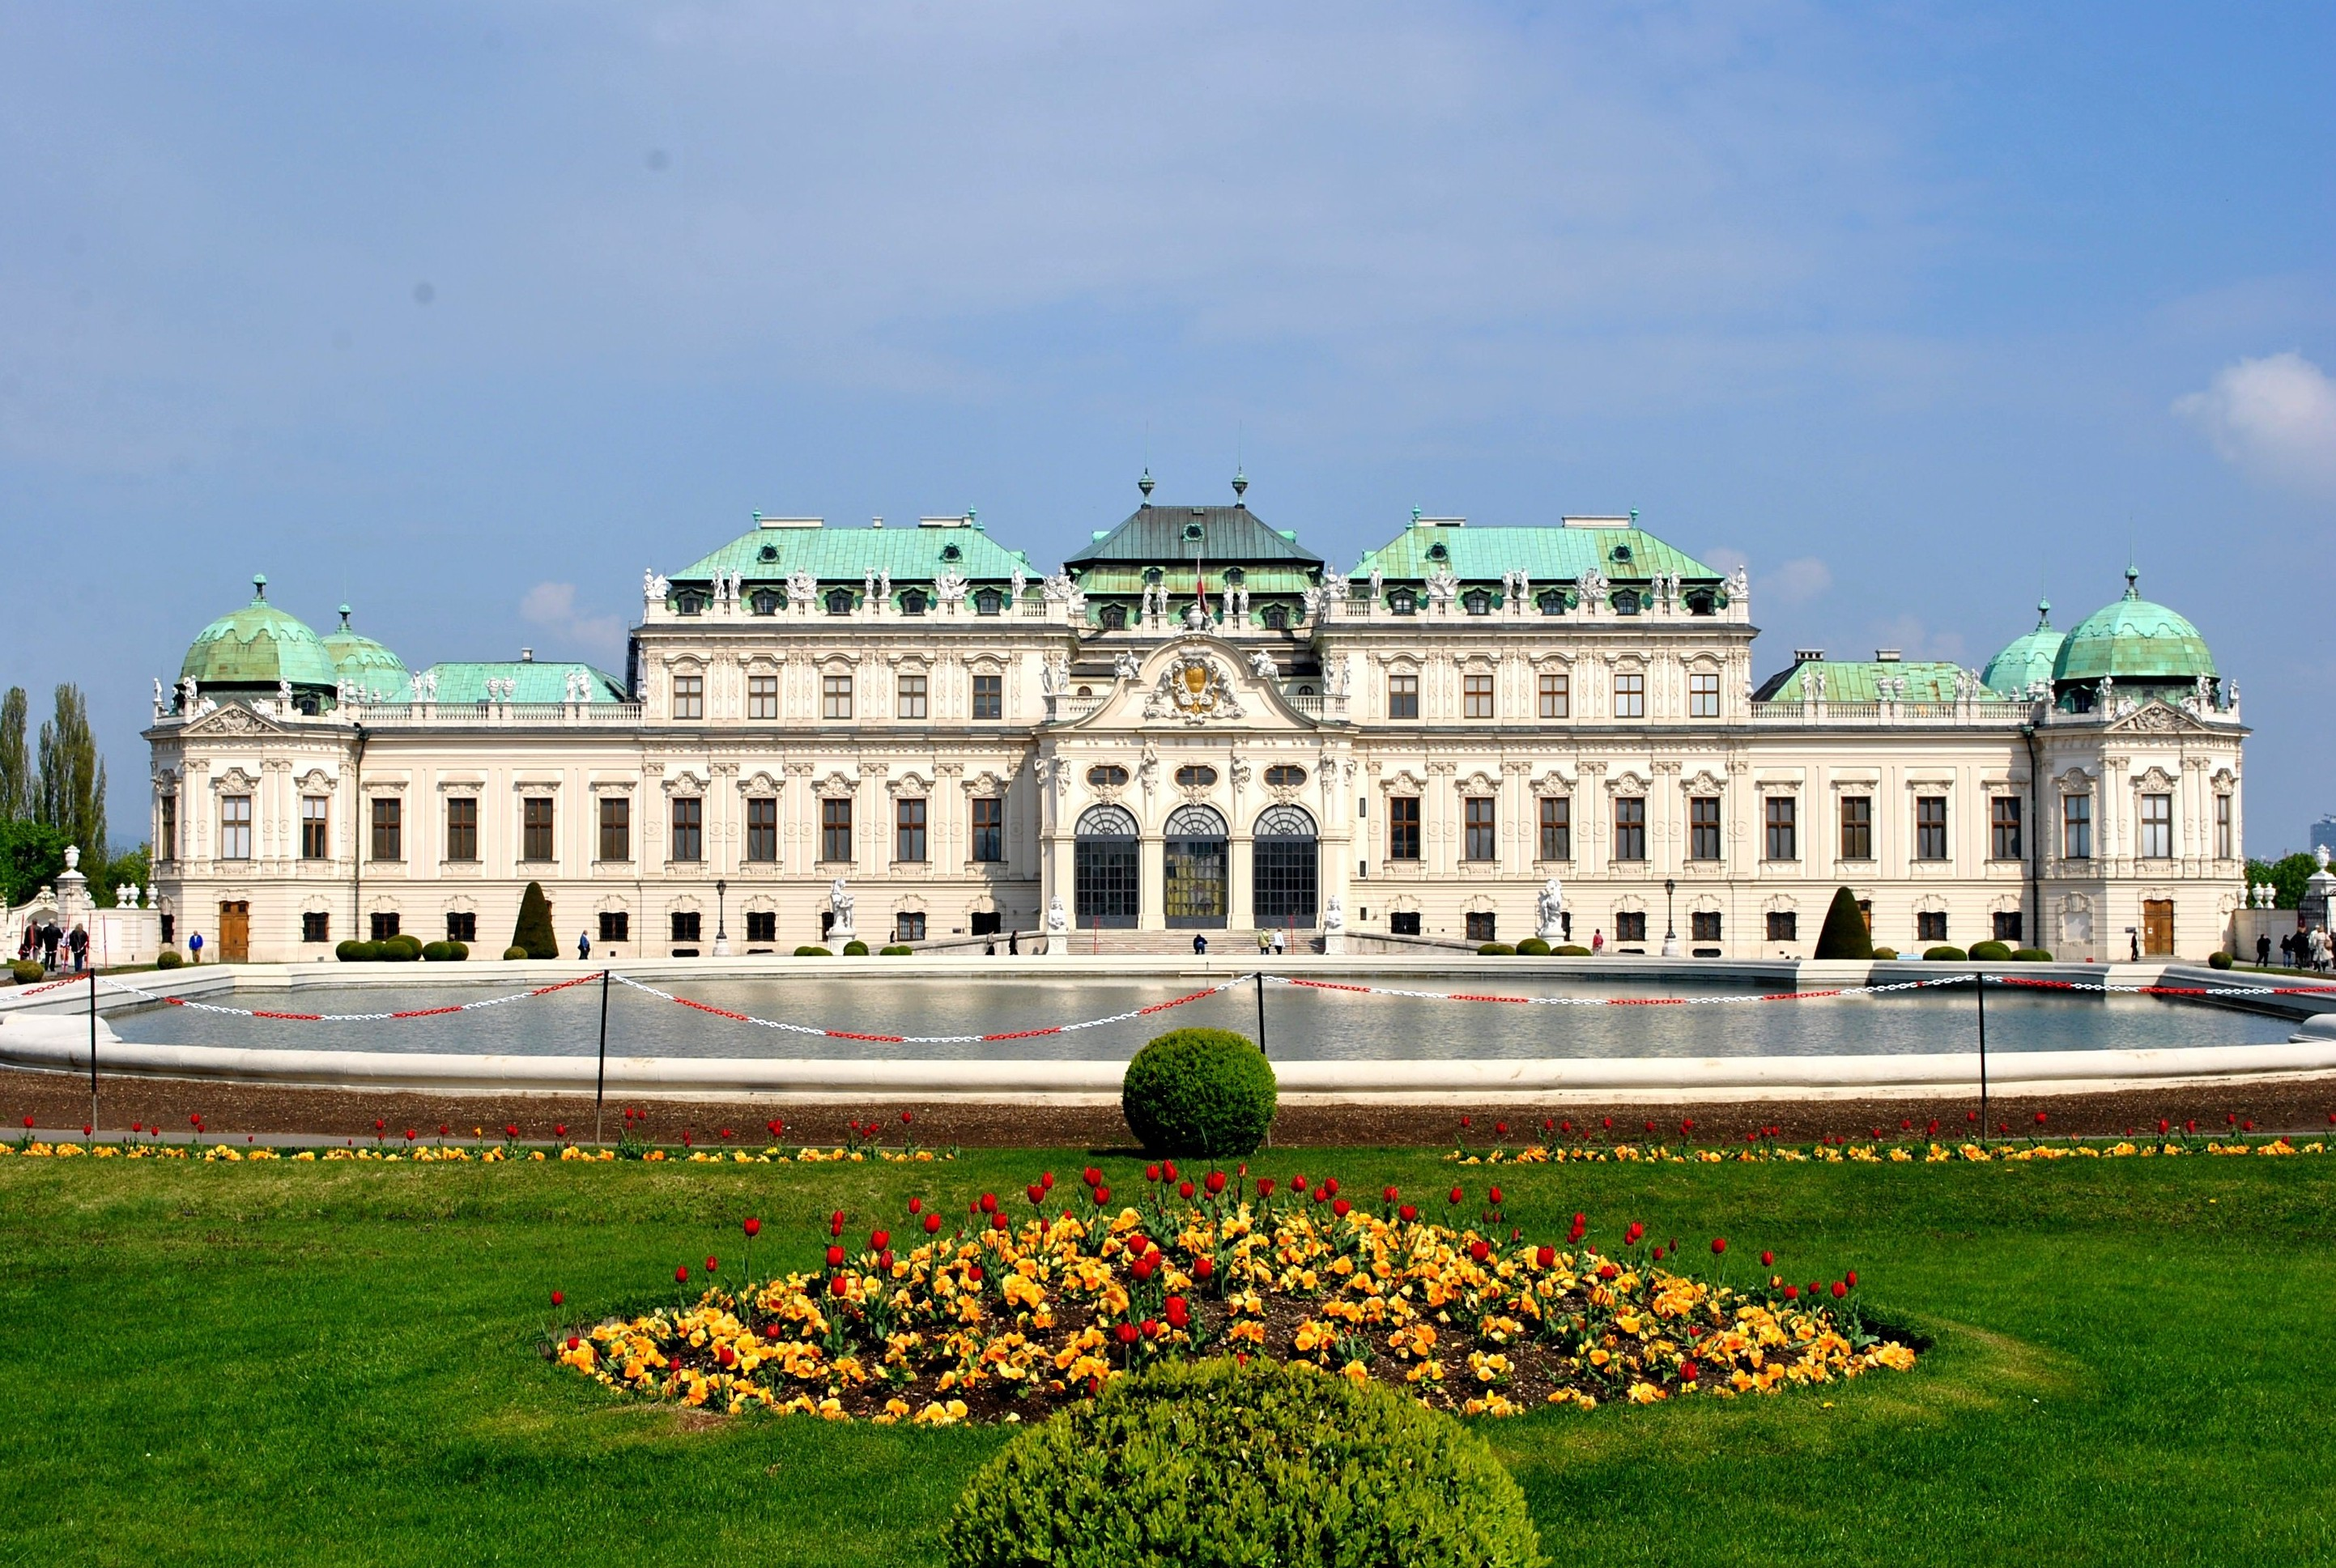 Vienna Austria  City new picture : Description 5 of 15 Belvedere Palace, Vienna AUSTRIA